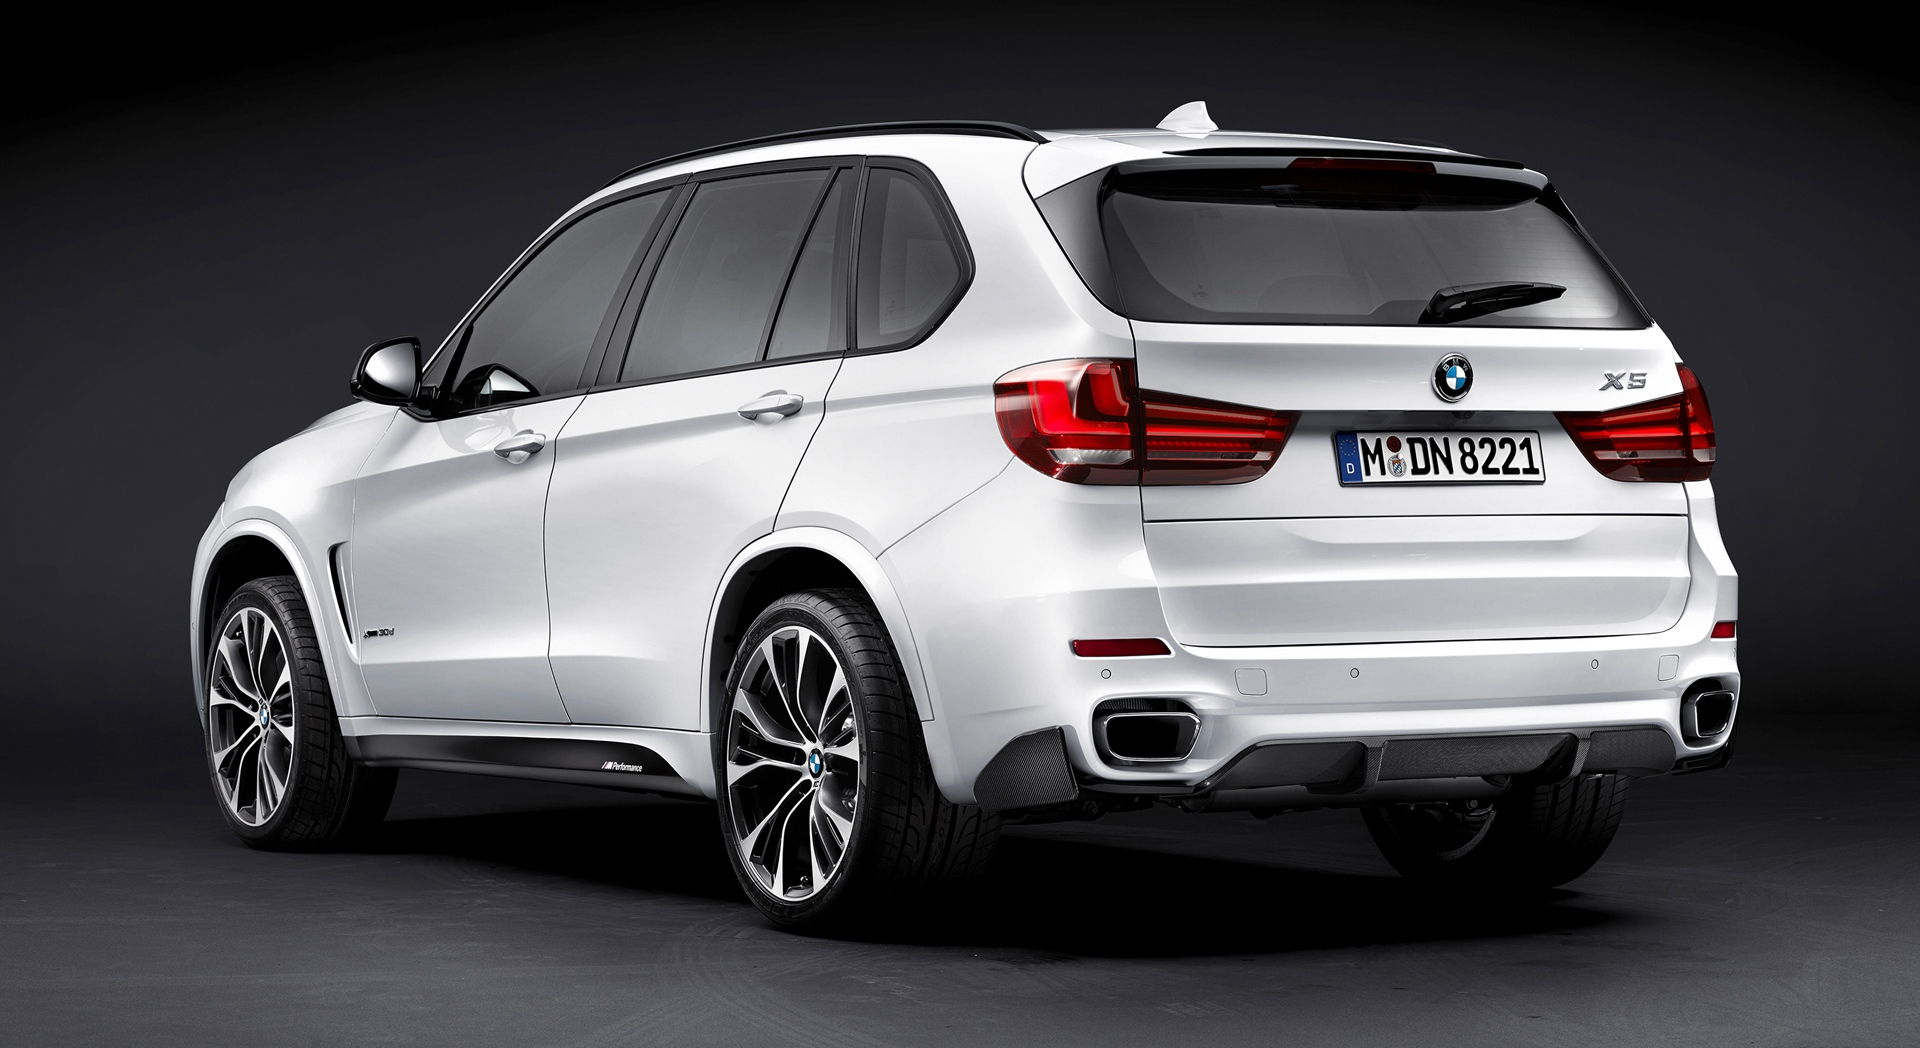 bmw x5 white mobile